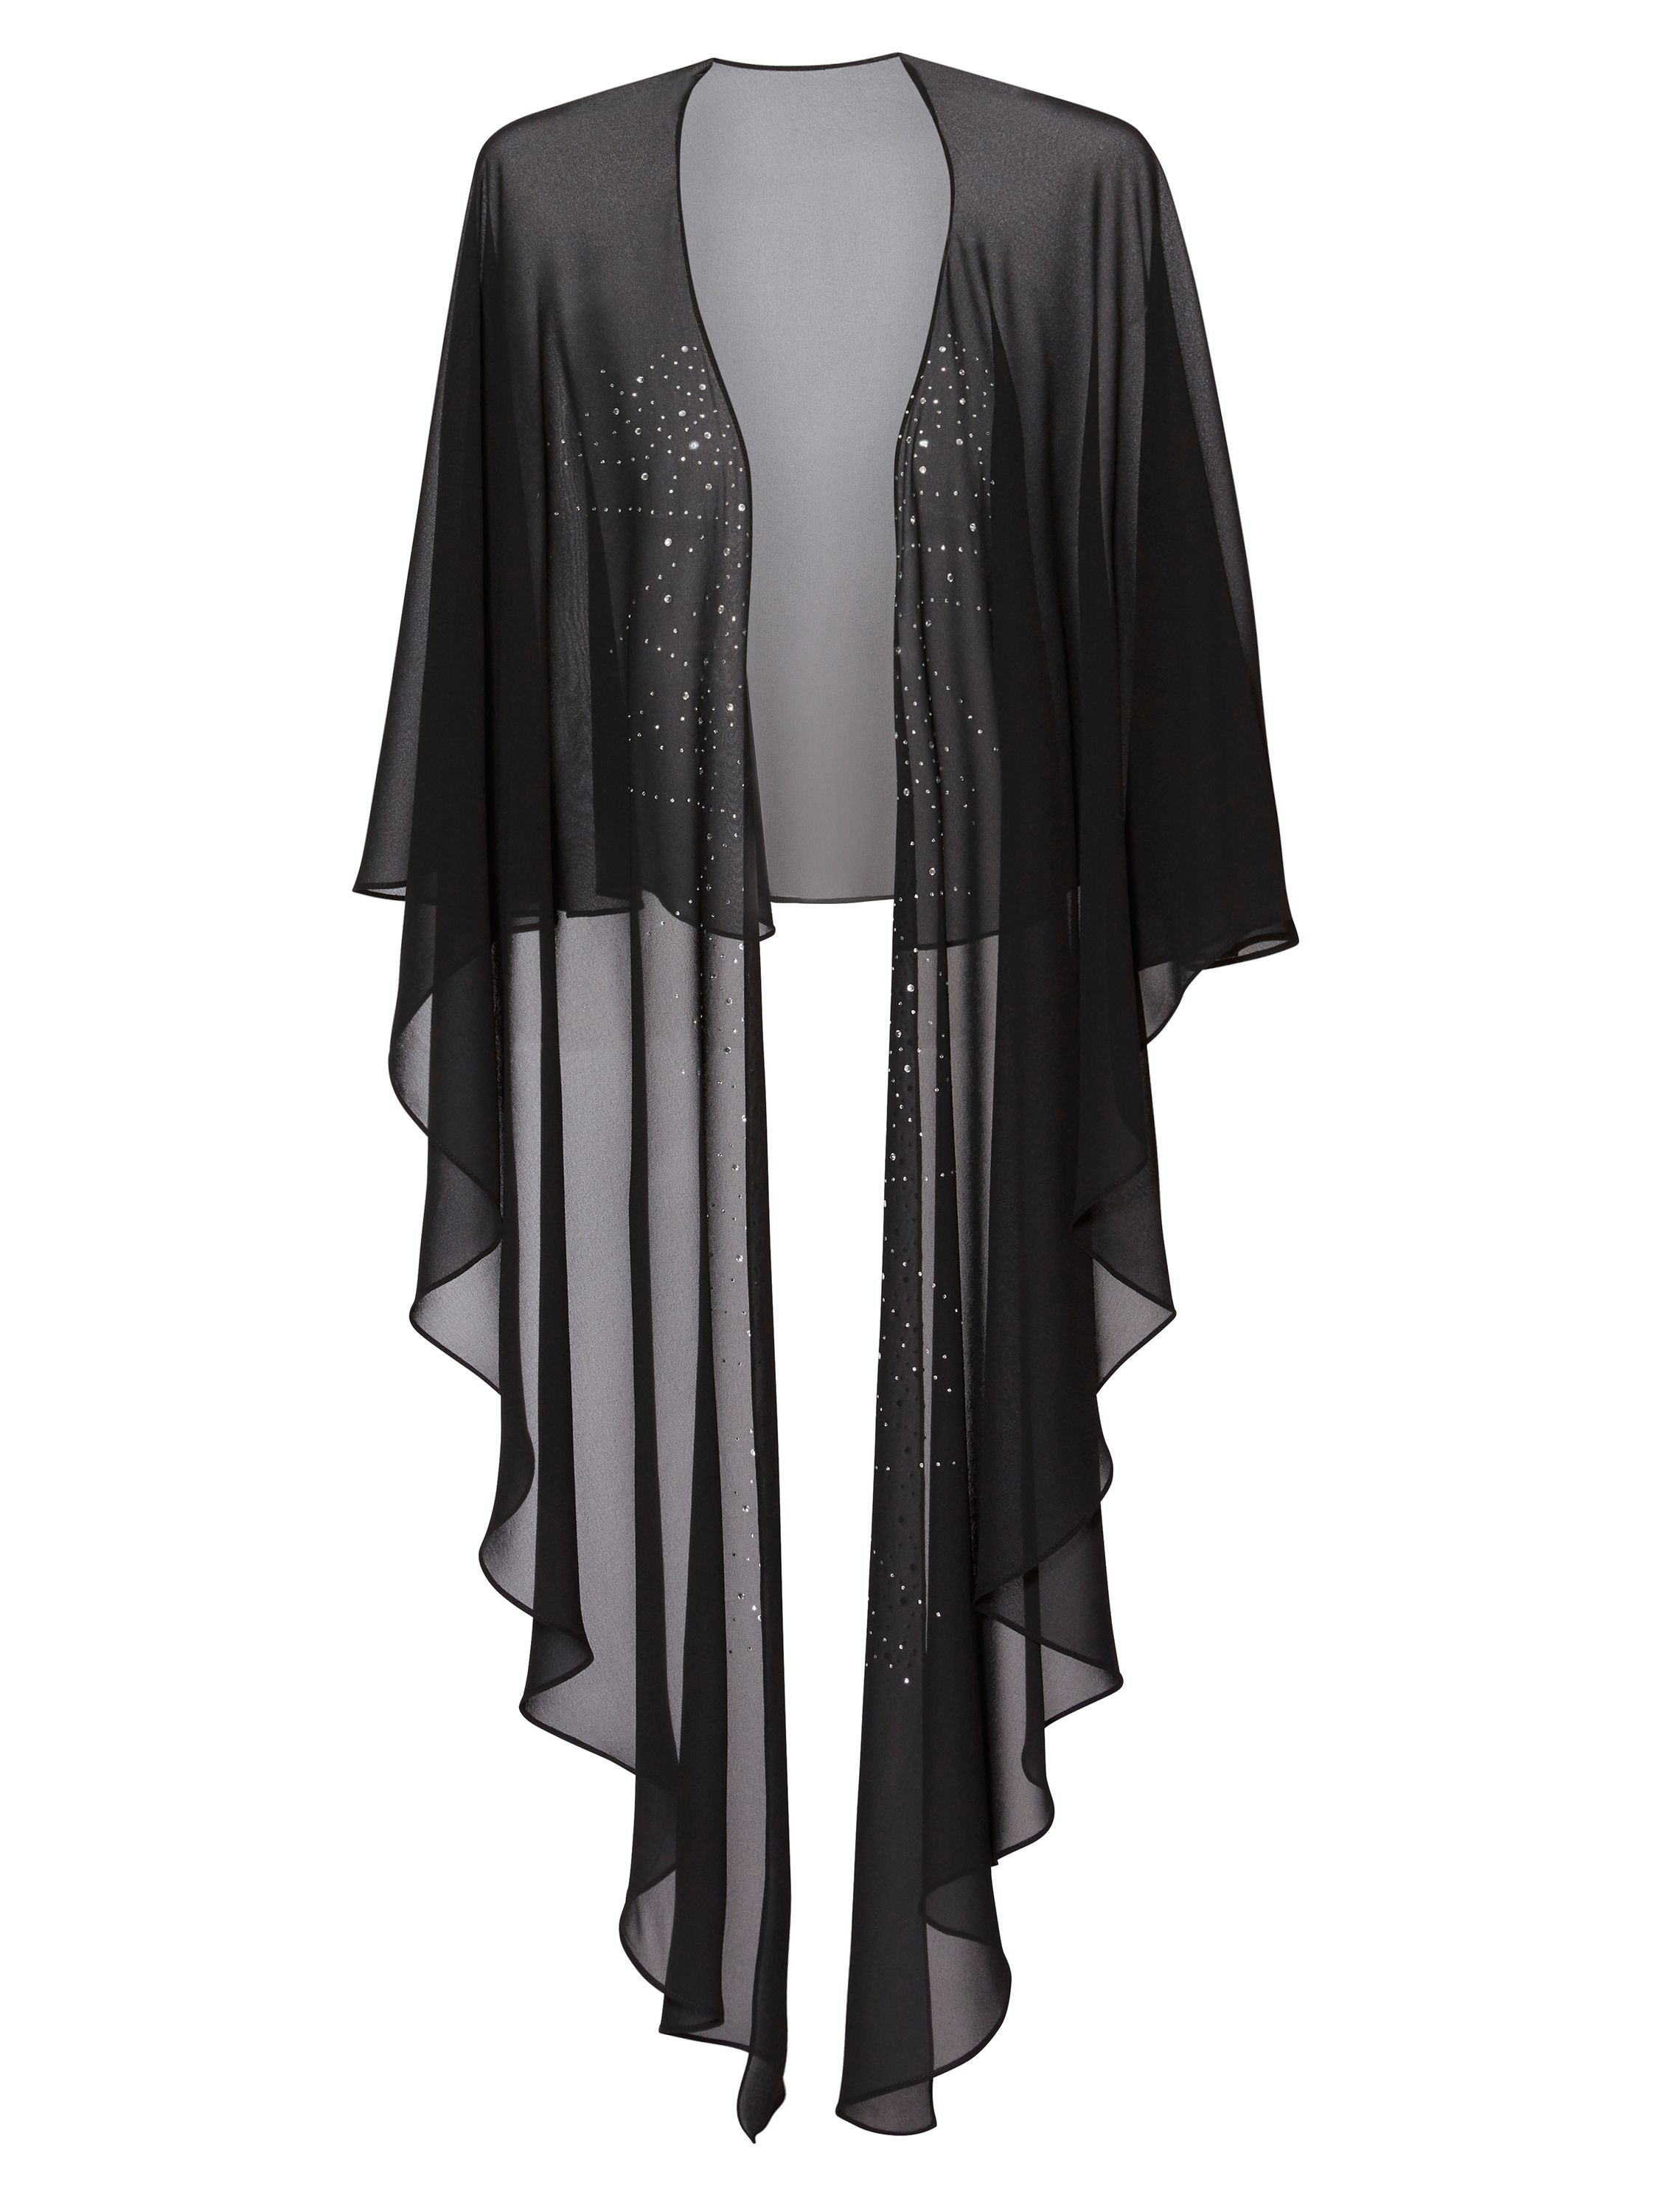 Gina Bacconi Freya Diamante Shawl, Black